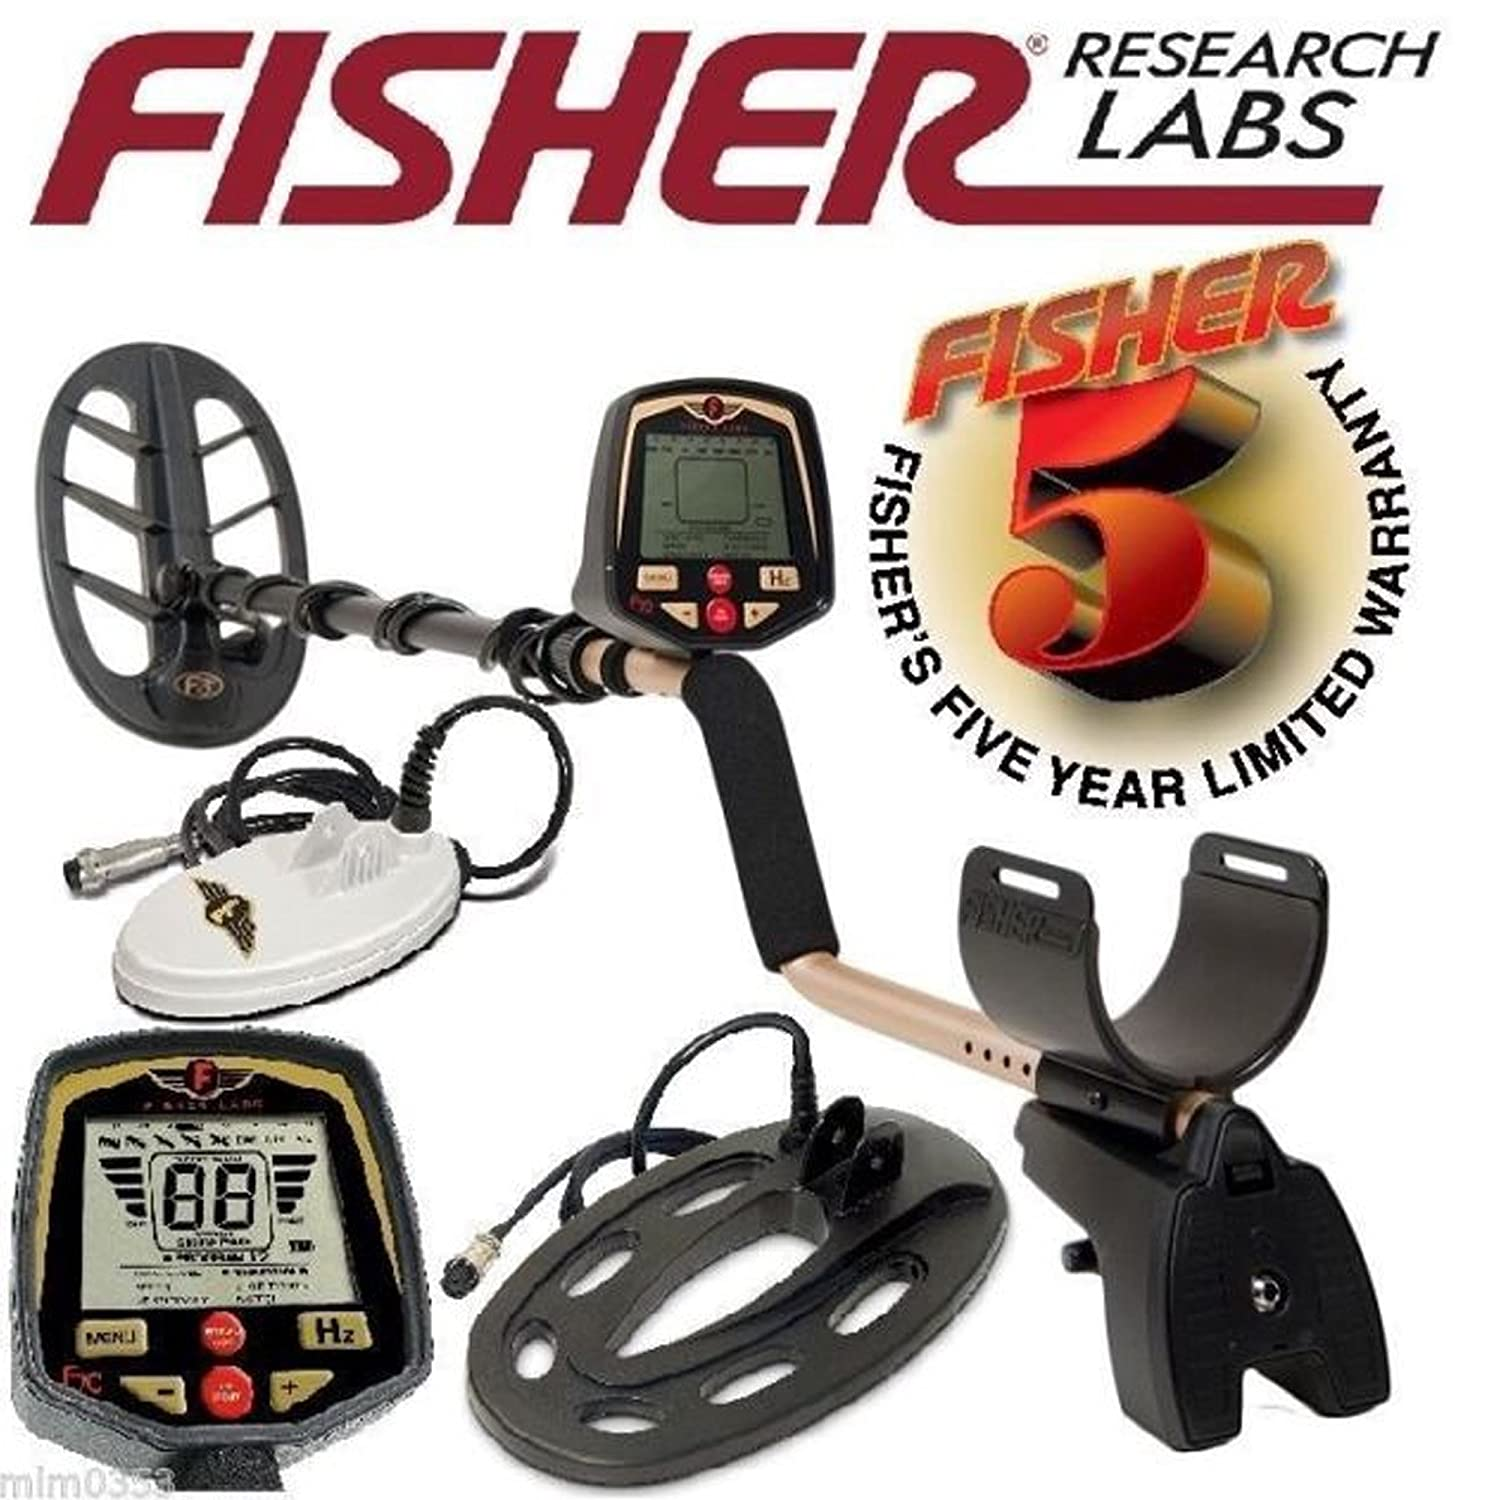 Amazon.com : Fisher F70 Multi-Purpose Metal Detector with 11 inch DD Bi-Axial Coil Upgrade : Garden & Outdoor